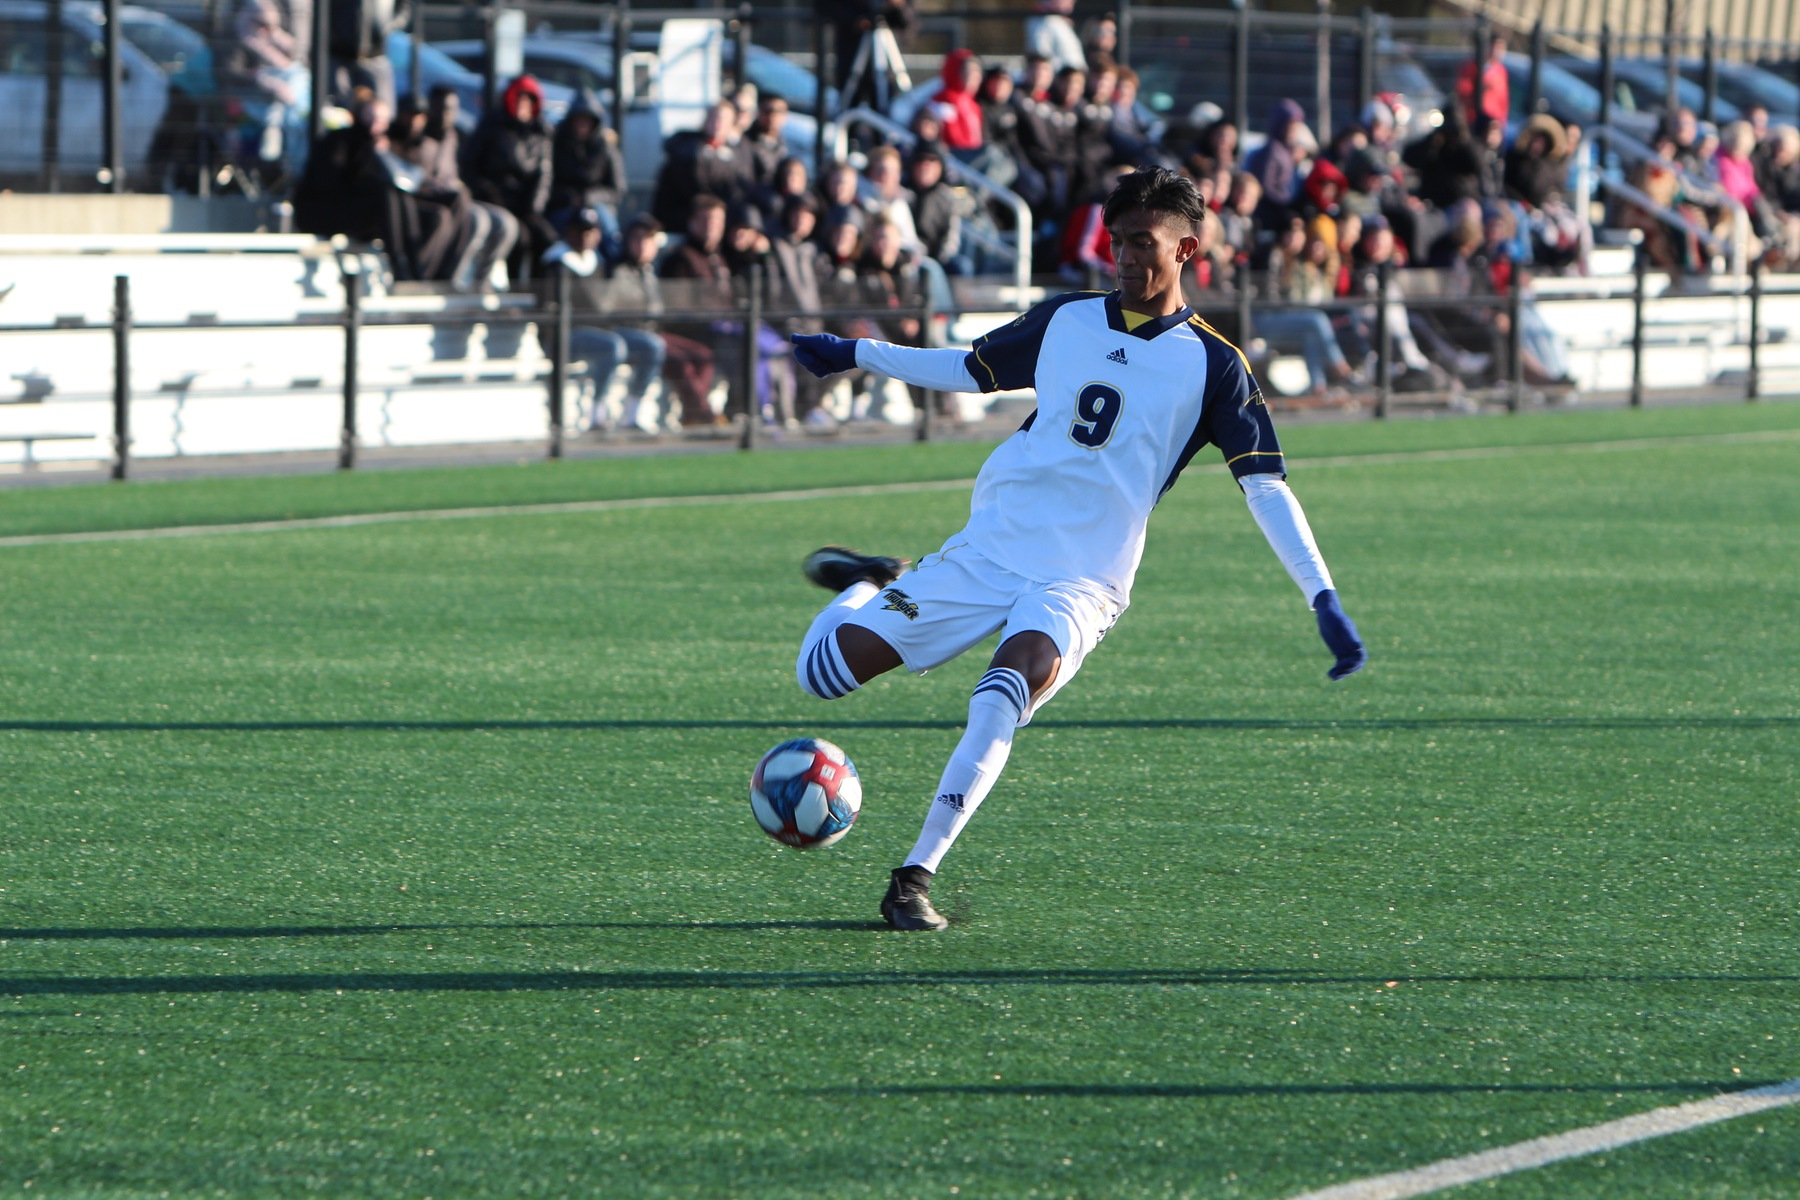 Thunder Men's Soccer Team Cruises to Win Over Wolves in Final Home Game of Season